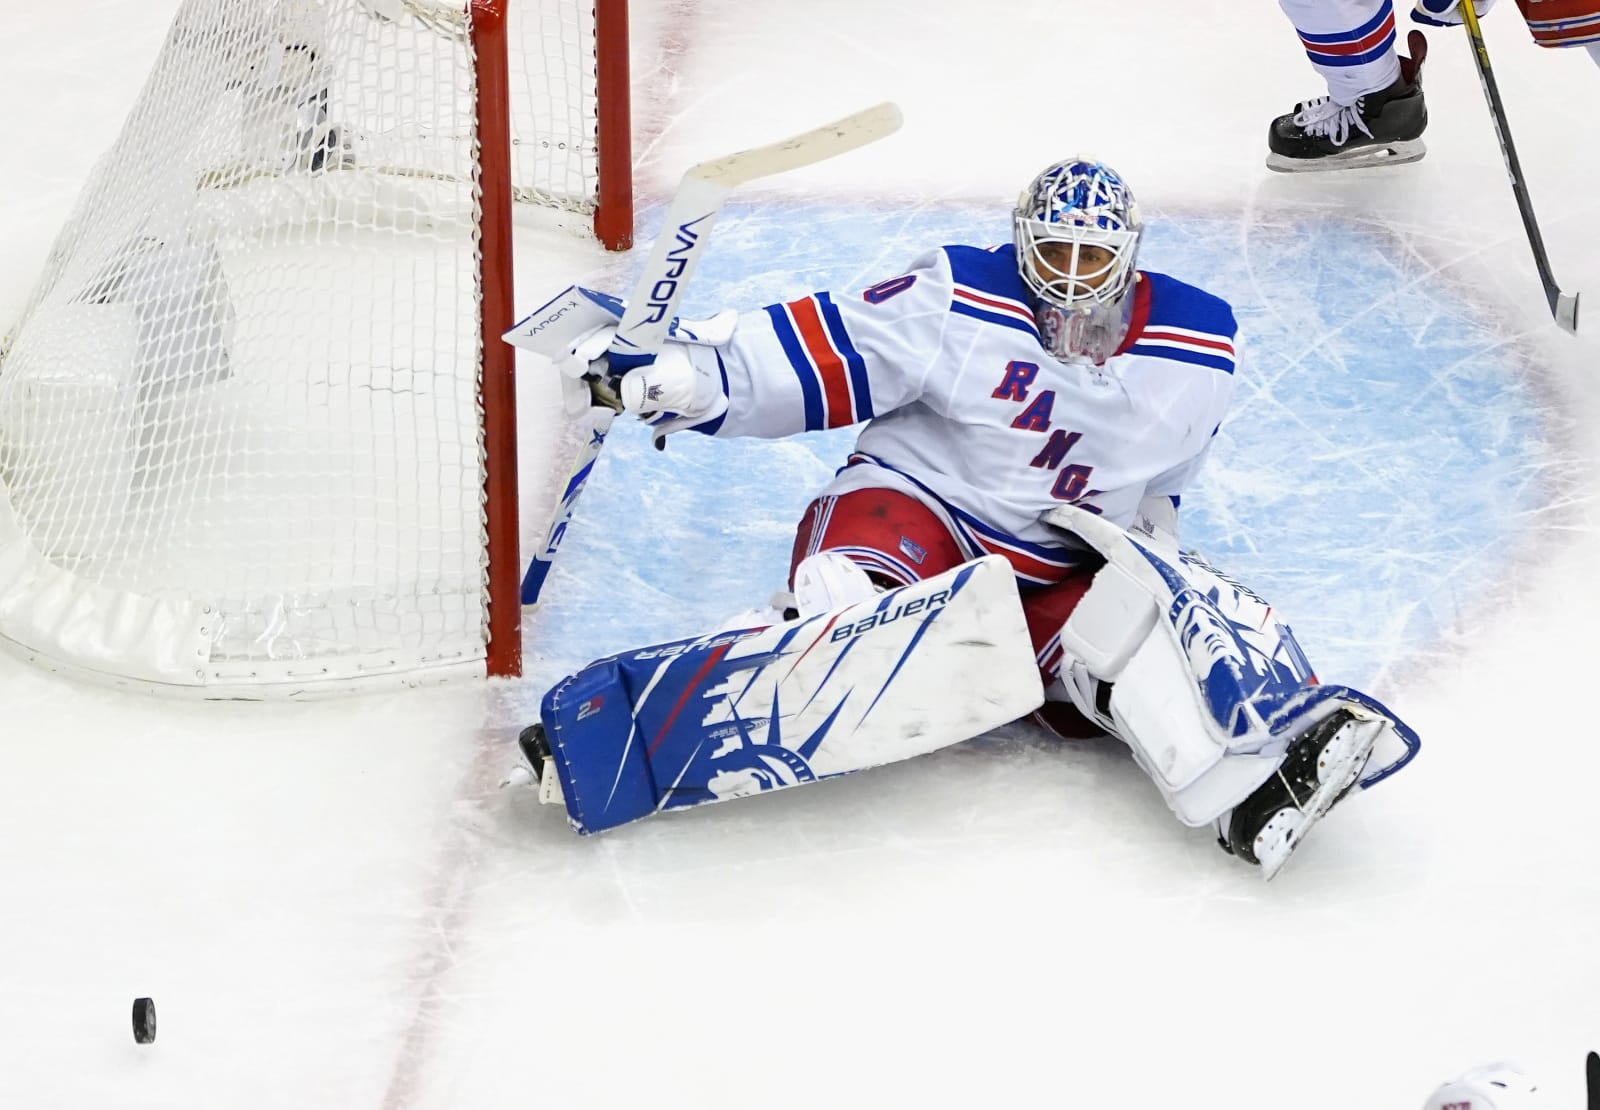 Henrik Lundqvist #30 of the New York Rangers tends net during the third period against the Carolina Hurricanes in Game One of the Eastern Conference Qualification Round.